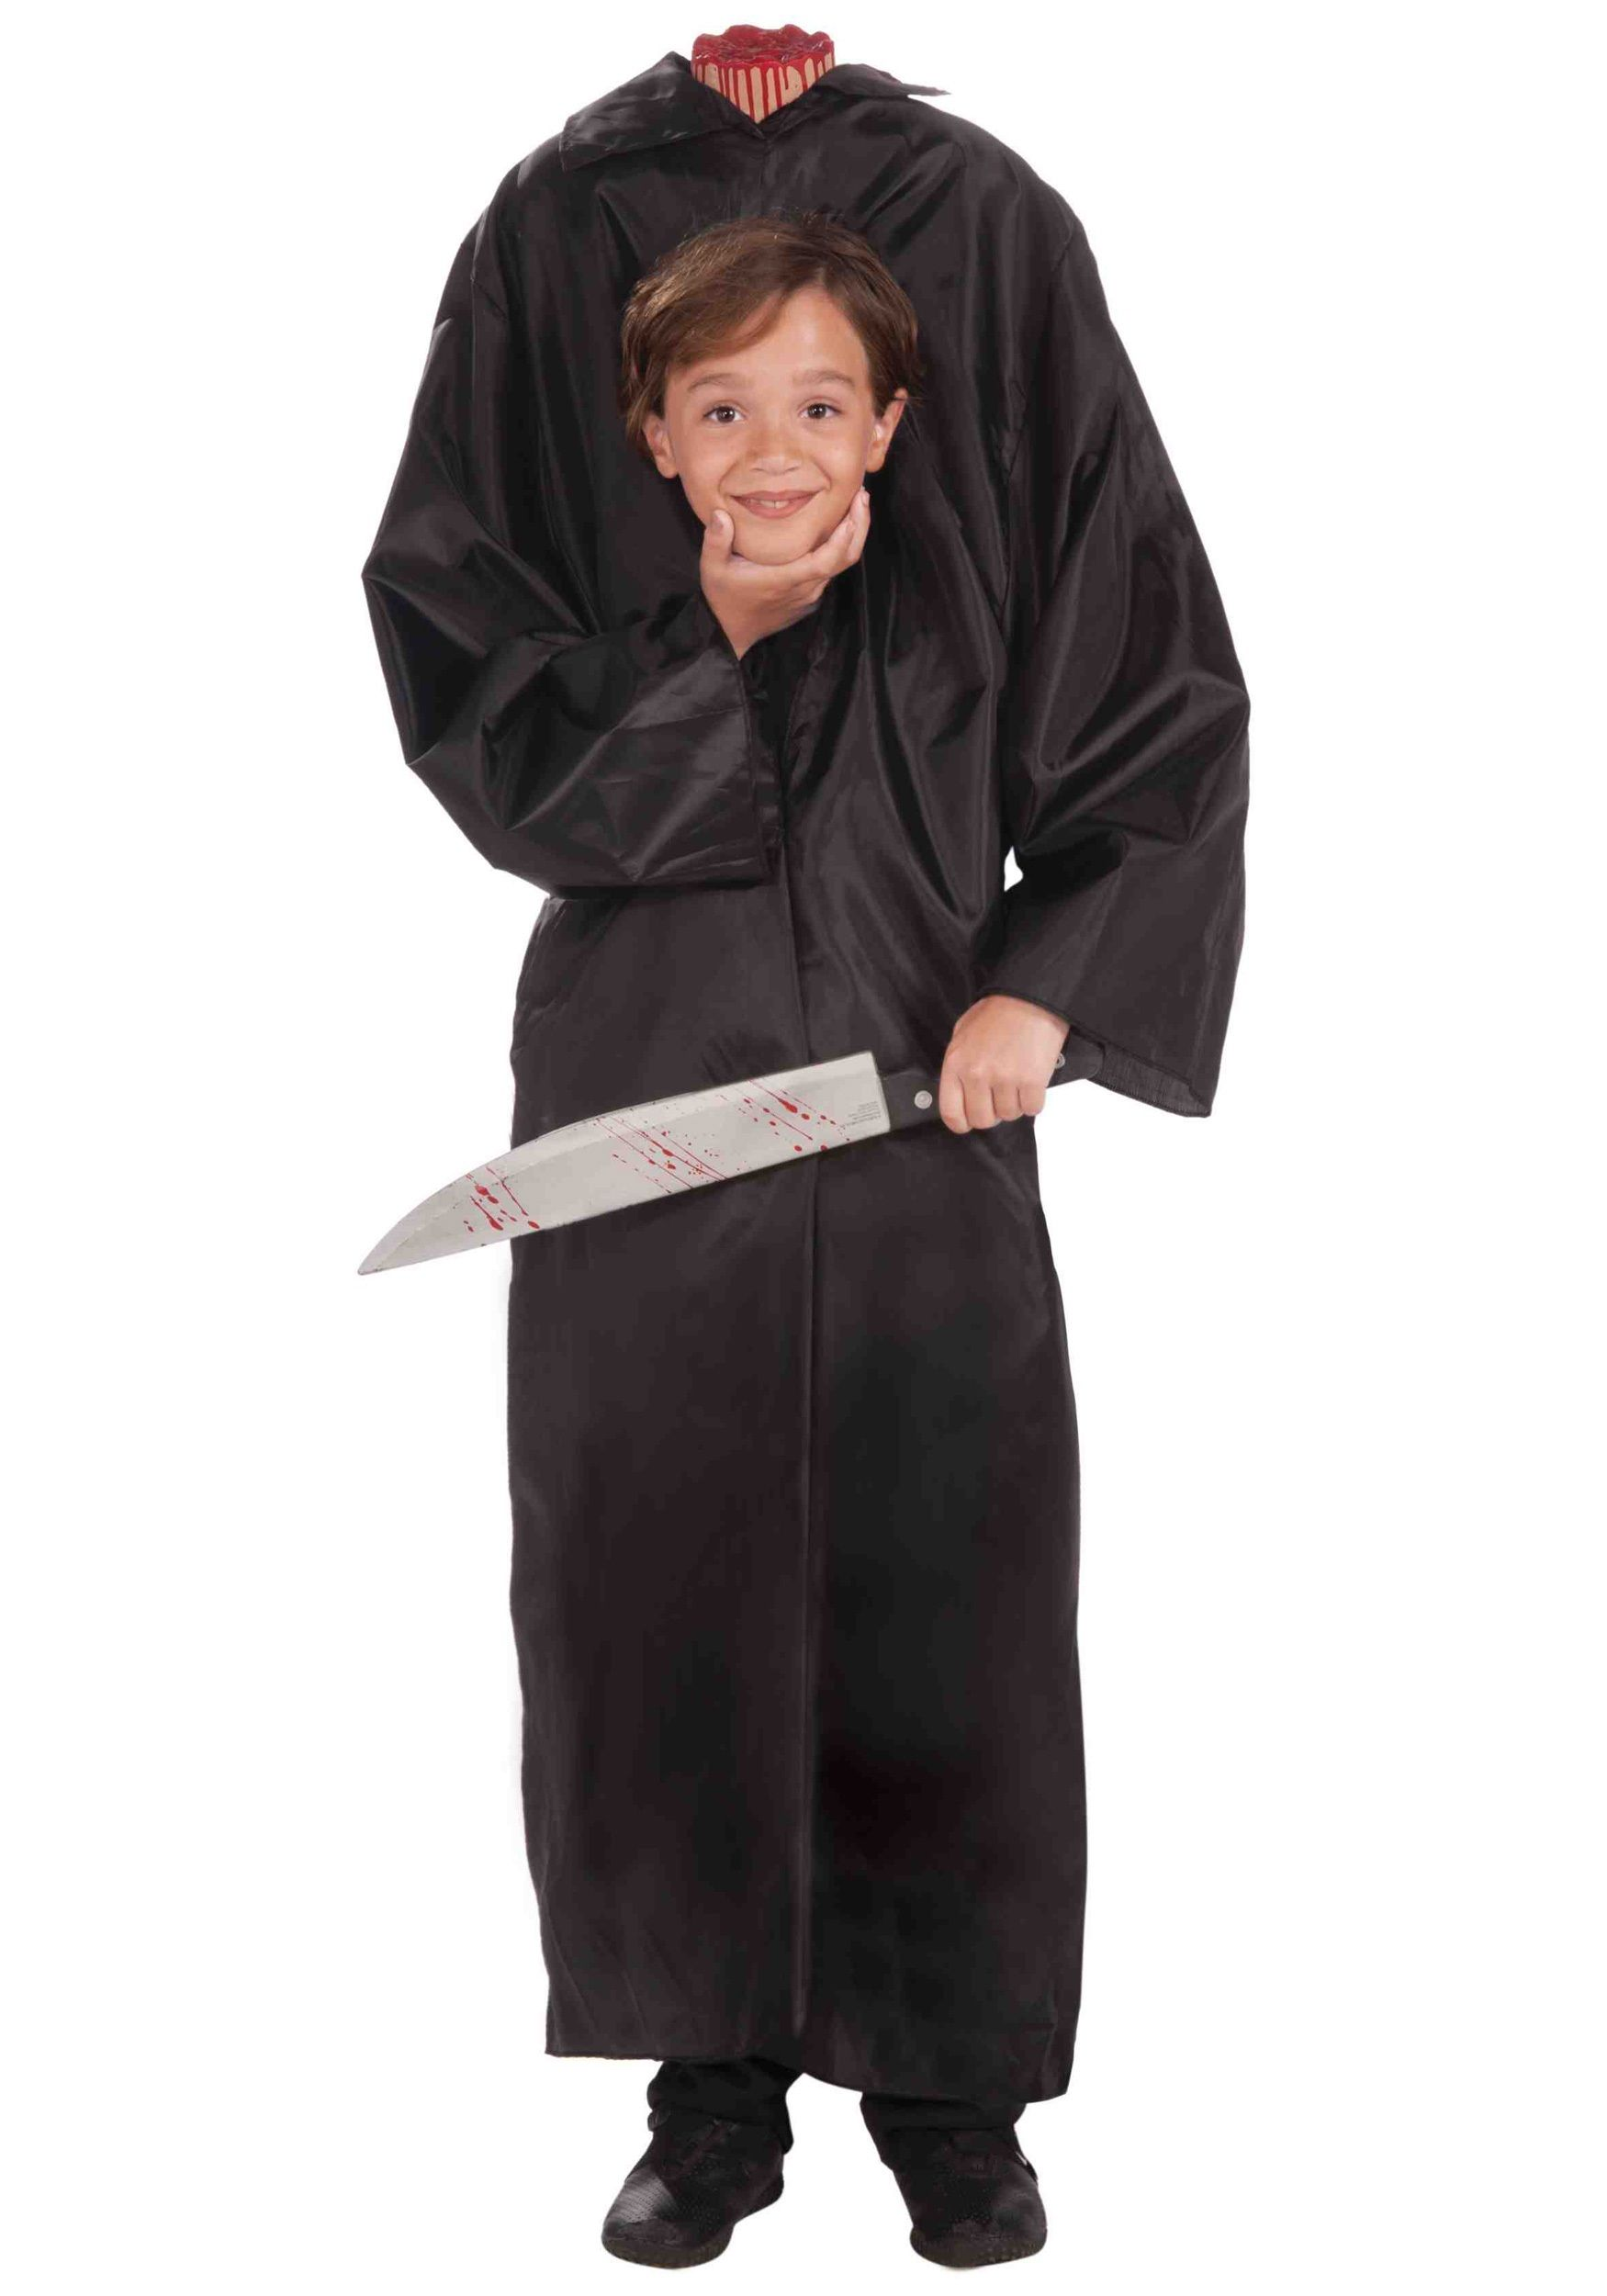 it looks like some one got a little too overzealous with that machete this child headless boy costume is a scary costume for kids to wear